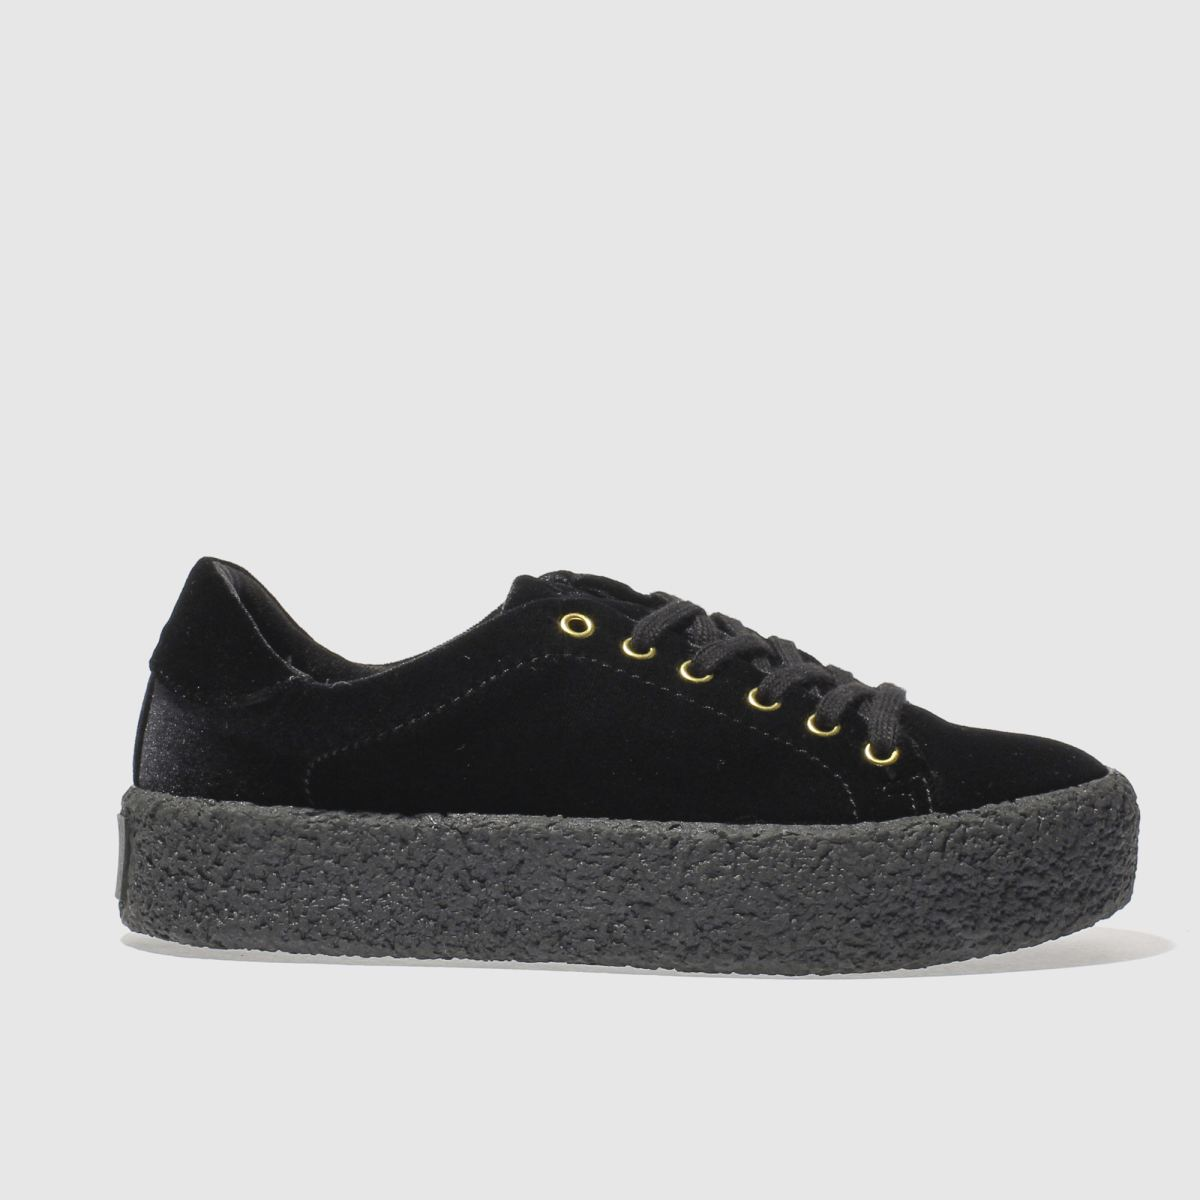 schuh black perfect match flat shoes